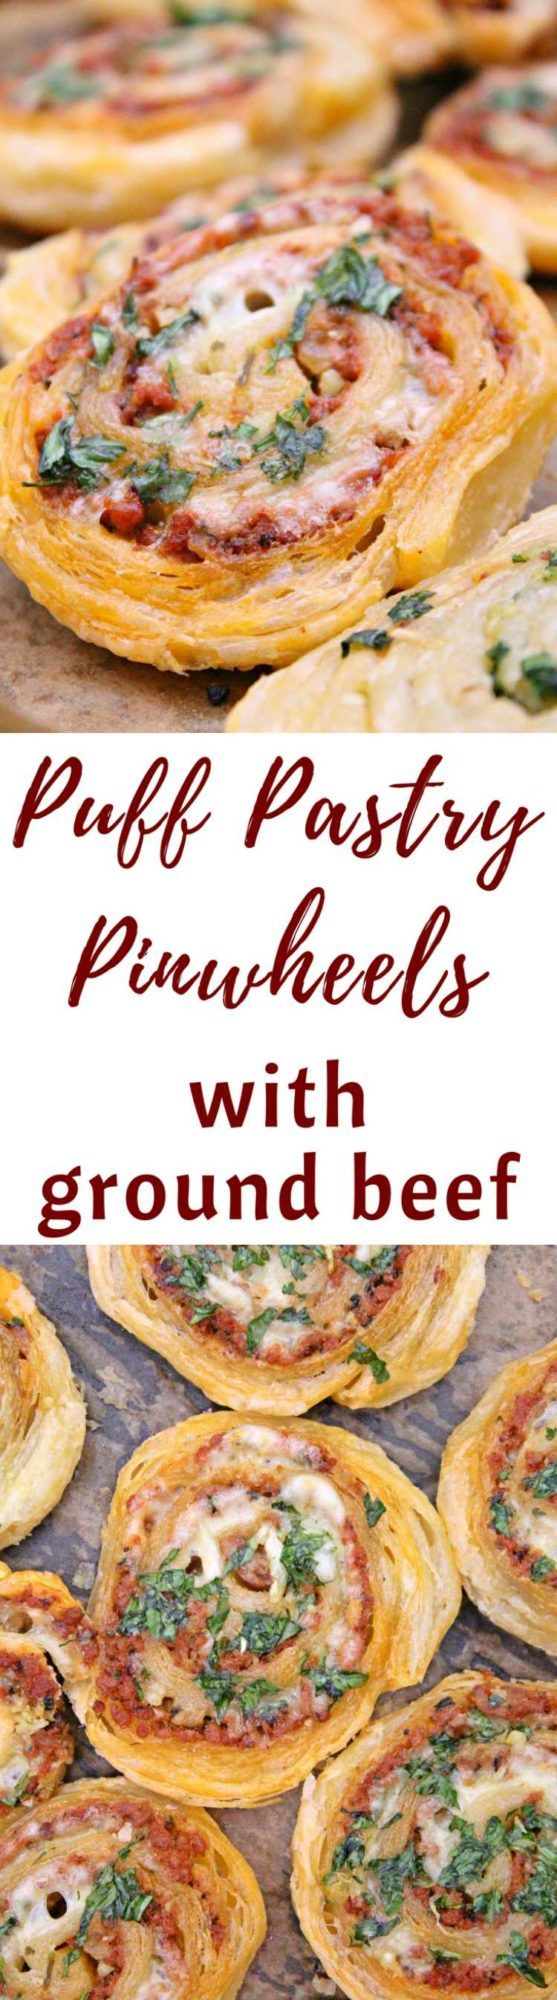 MEAT PINWHEELS WITH GROUND BEEF - Great as finger food for parties, a yummy snack or a meal on the run, these meat pinwheels are super easy to make and insanely delicious!  #meat #beef #appetizer #pinwheel #delicious #recipe #recipes #puffpastry #pastry